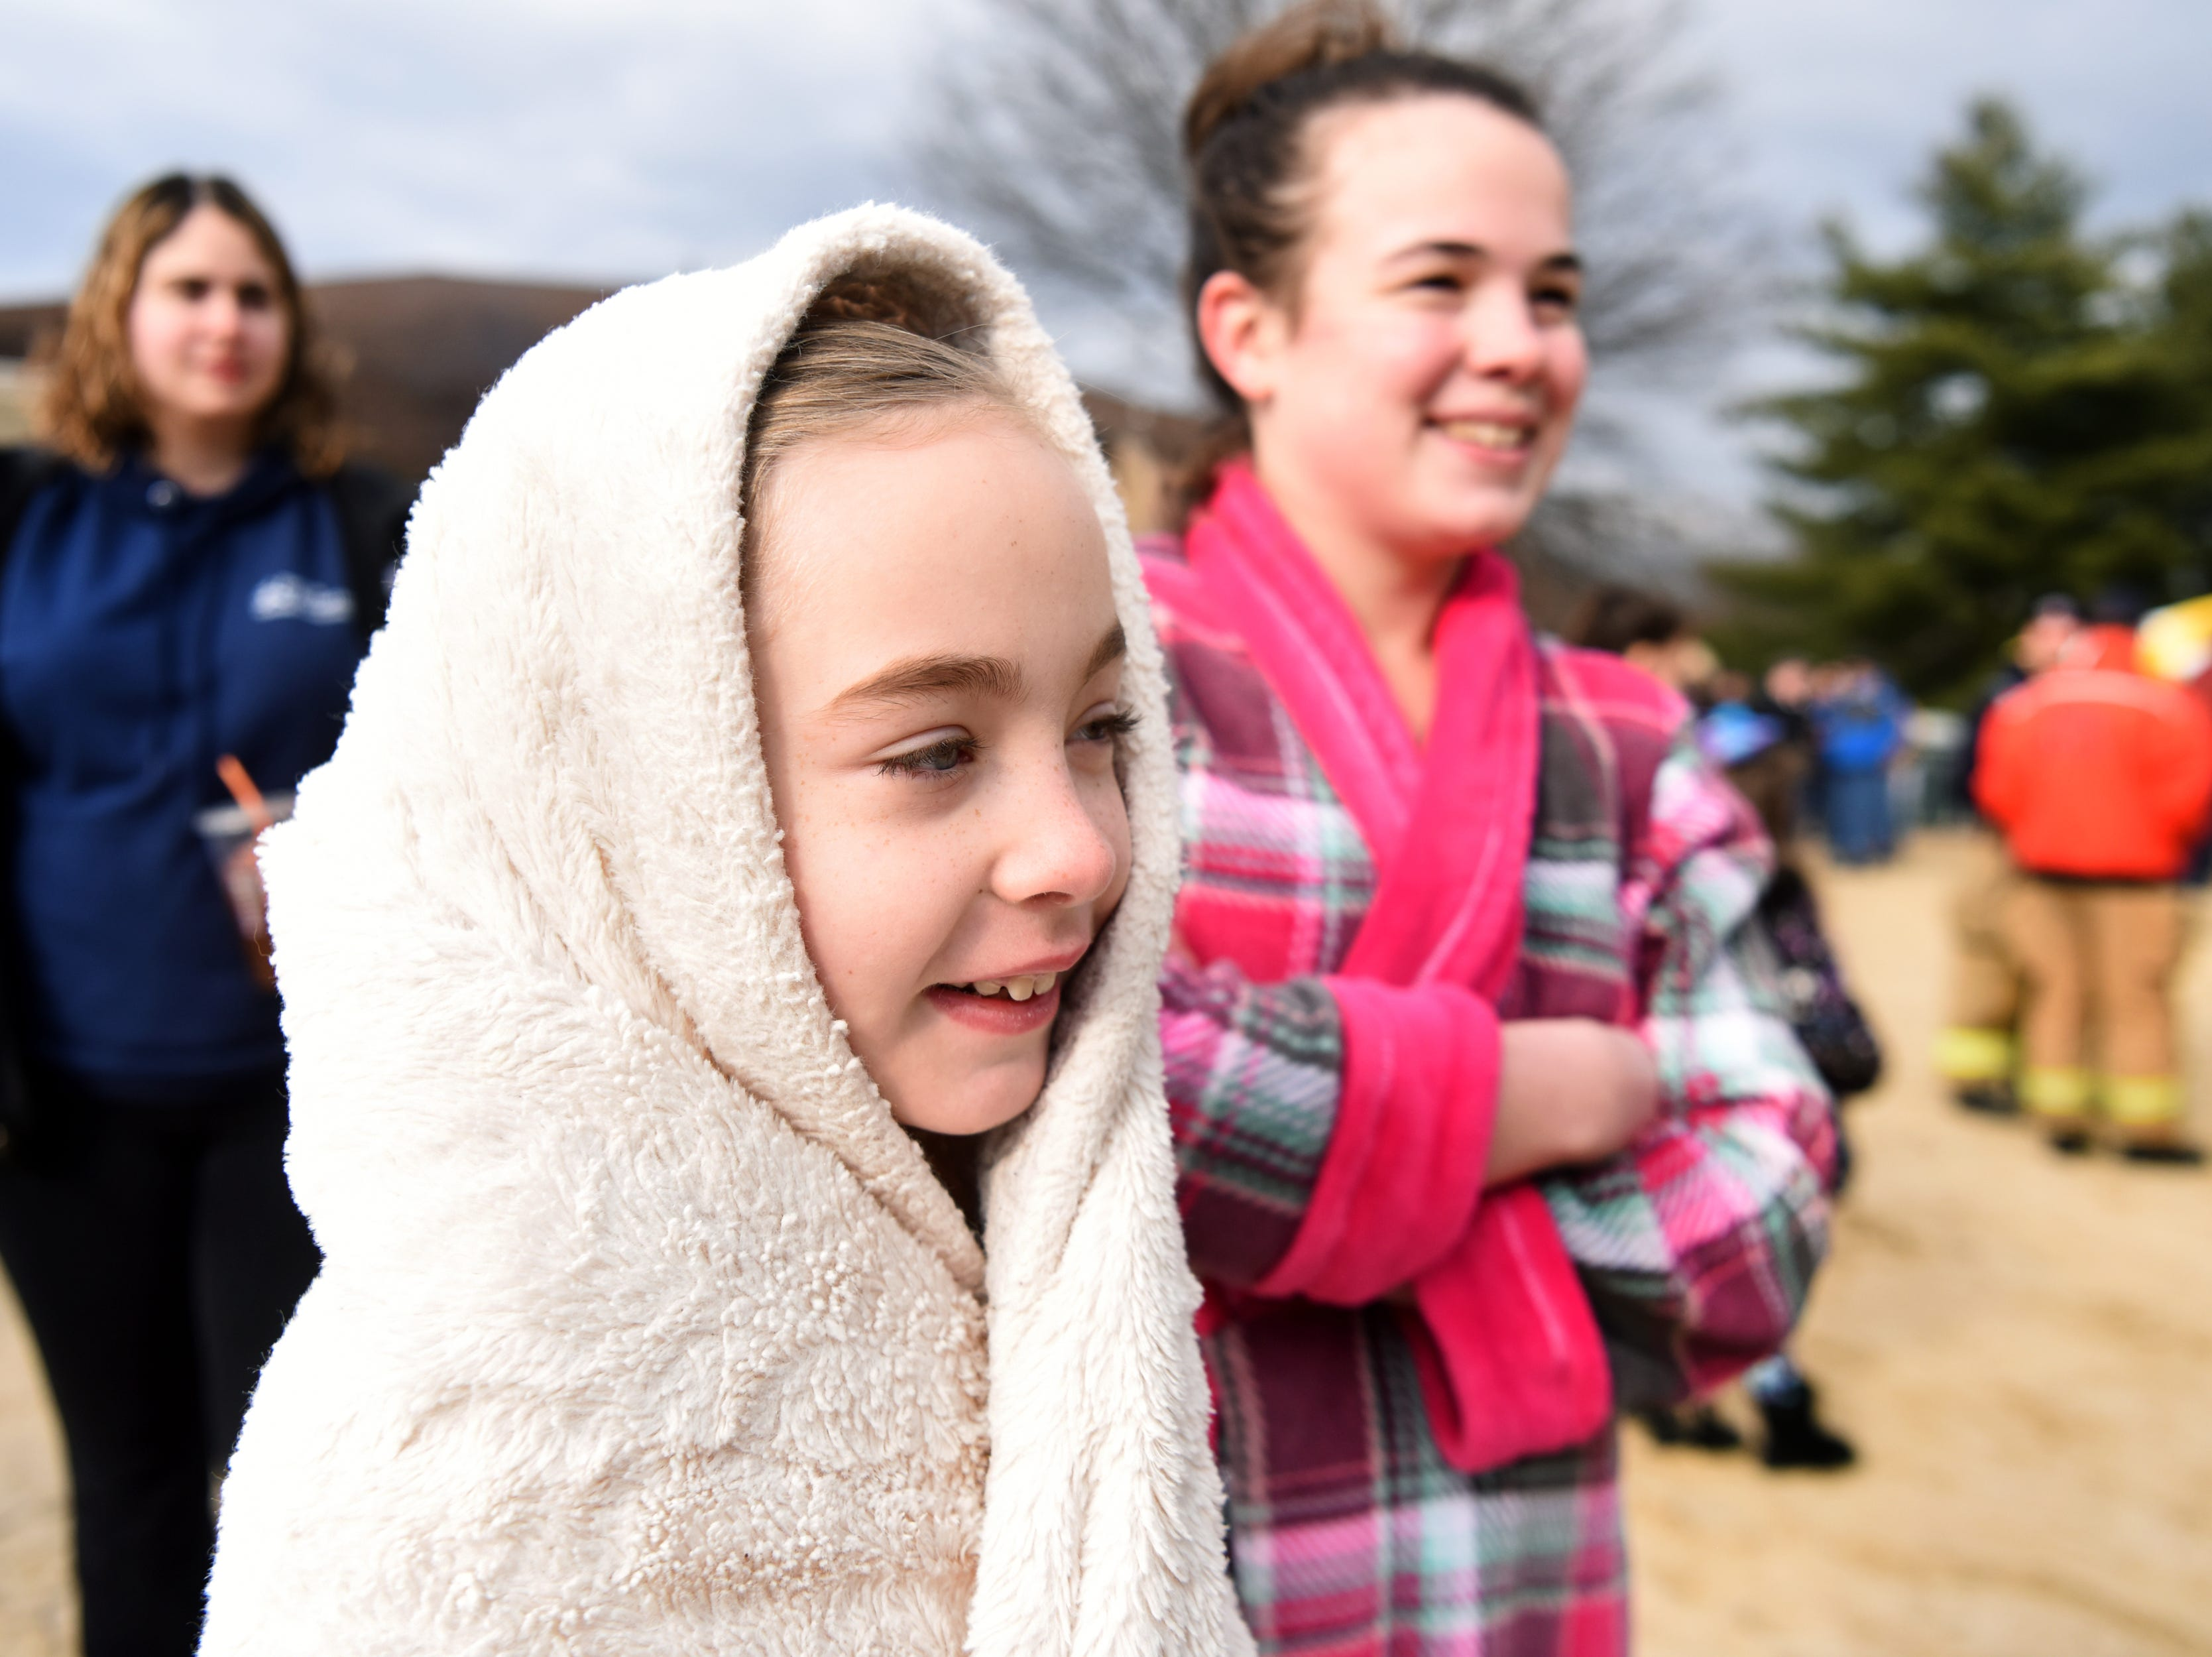 Brianna Carson, 8, huddles in her towel waiting for the start of the 4th annual Pequannock Polar Plunge in Pequannock Valley Park on Sunday, January 6, 2019.